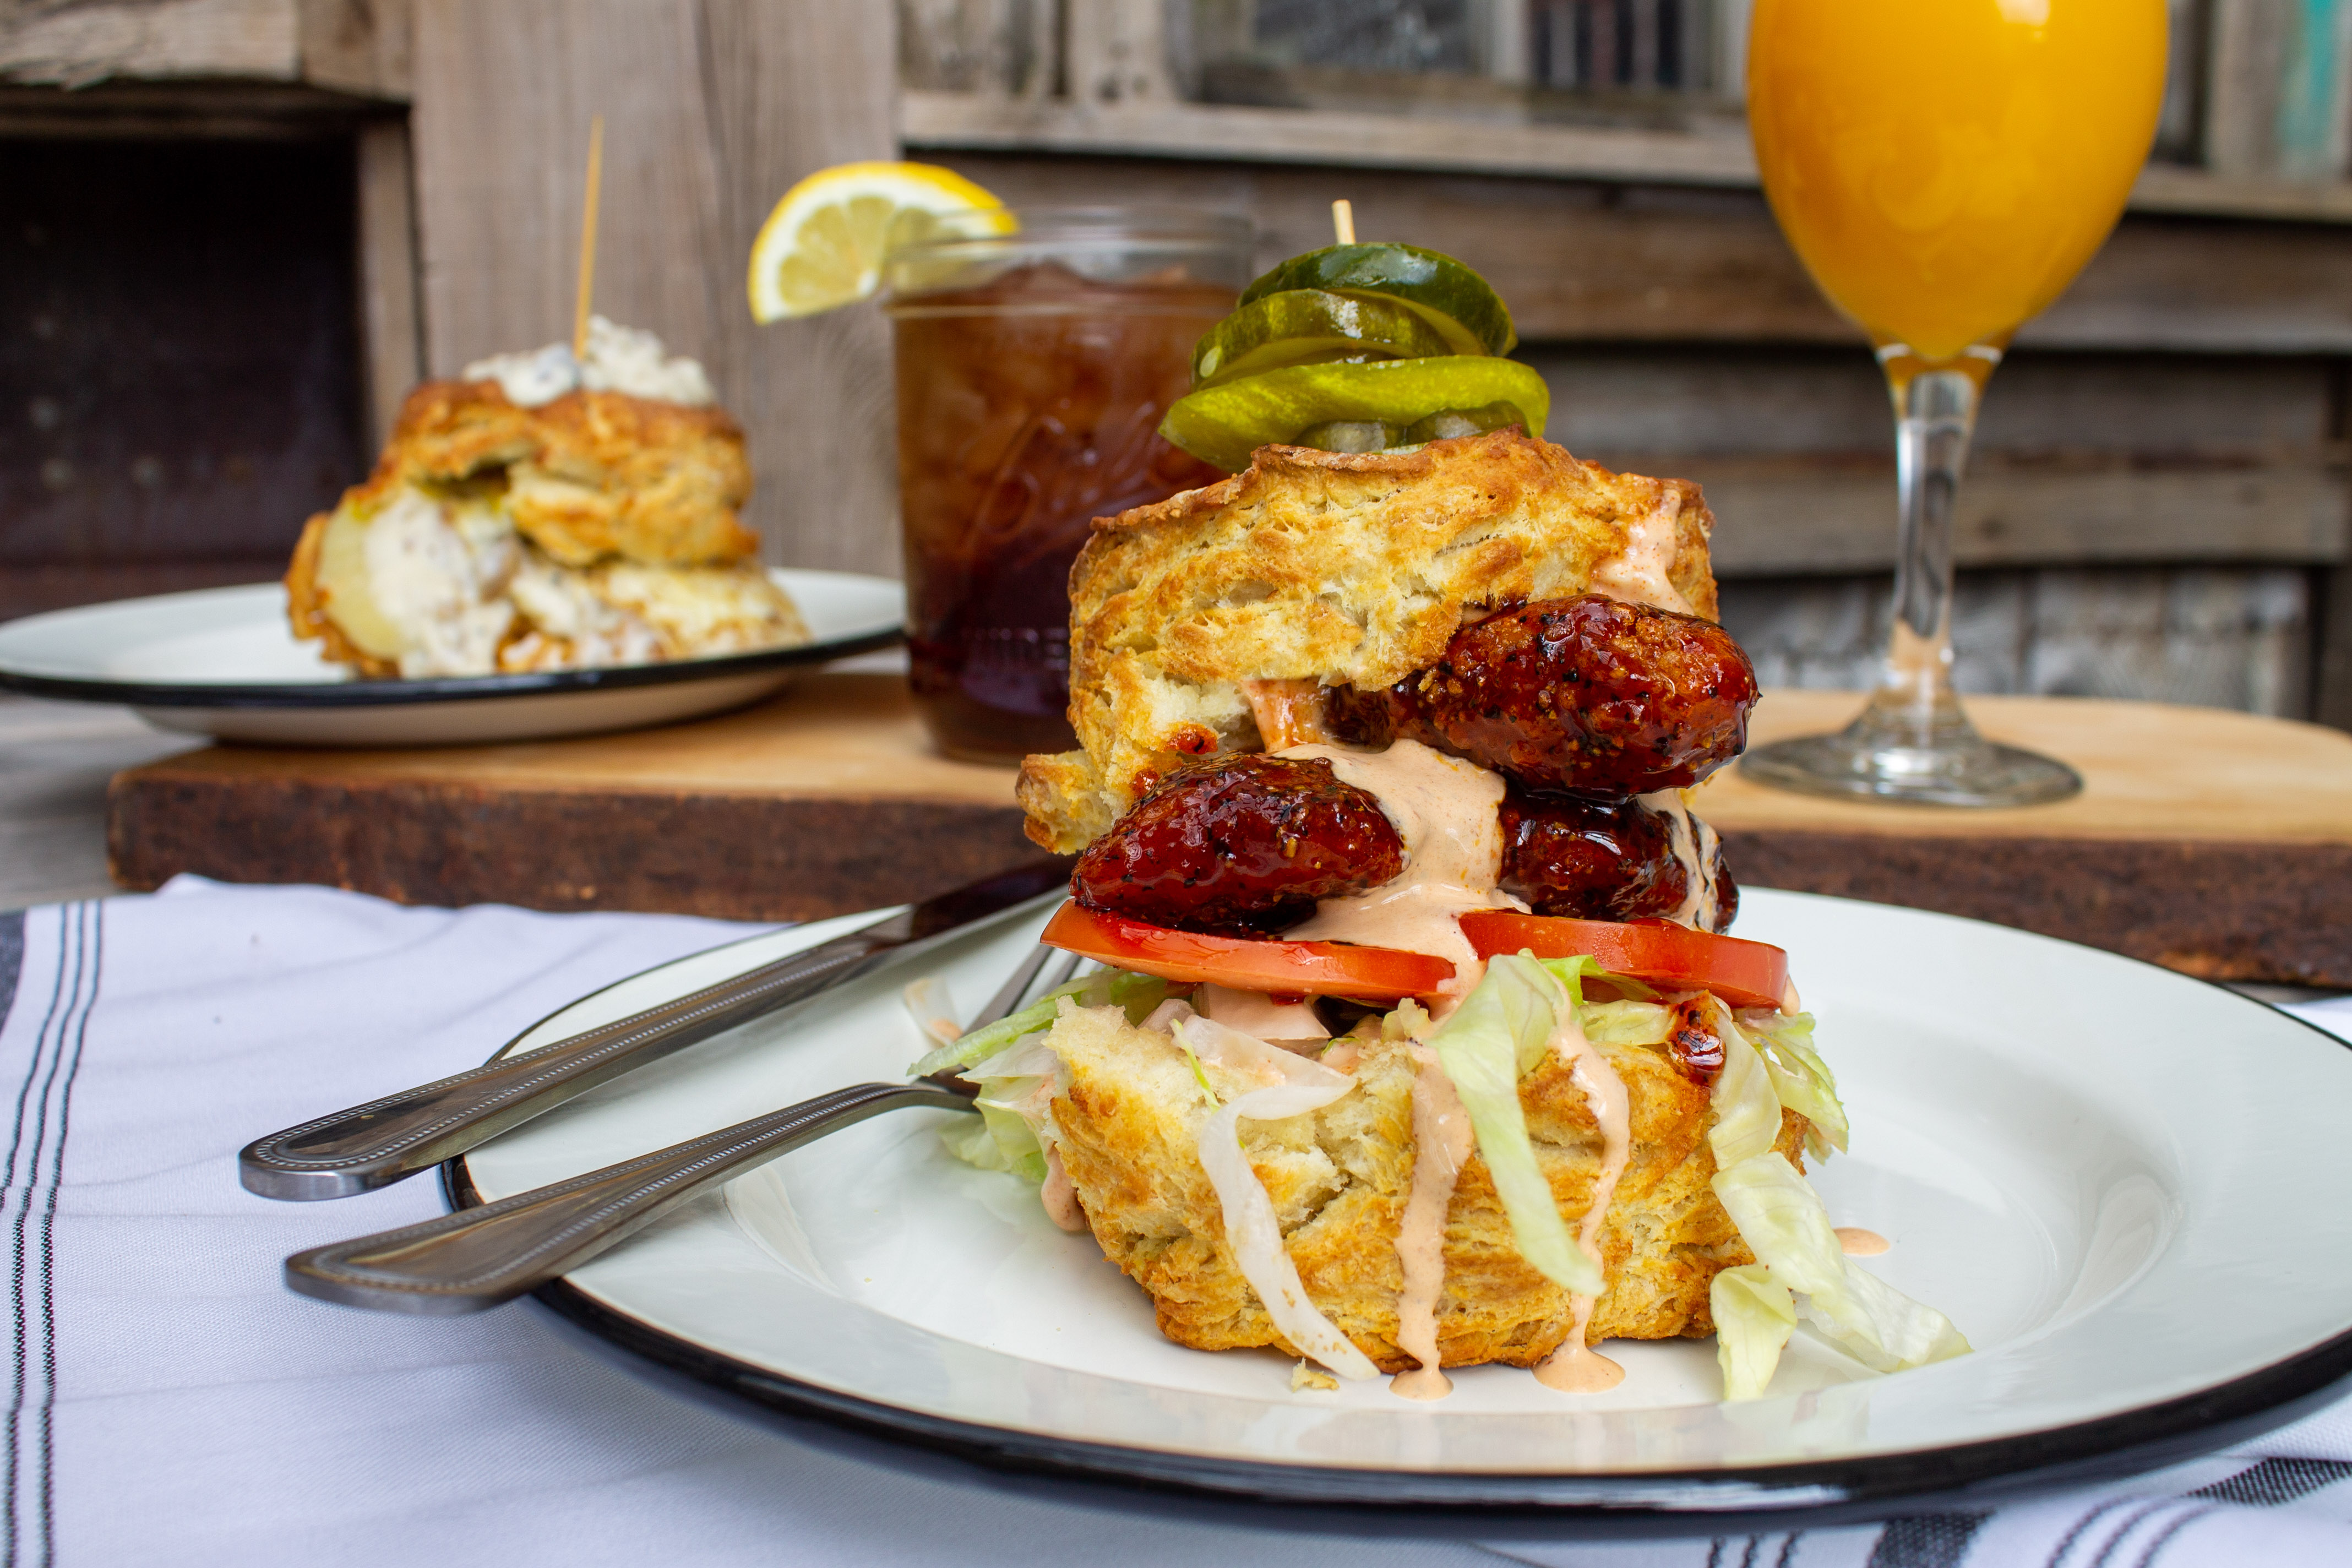 Hospitality Democracy to Launch New Pop-up Brunch Spot Brew City Biscuits this Saturday, August 15